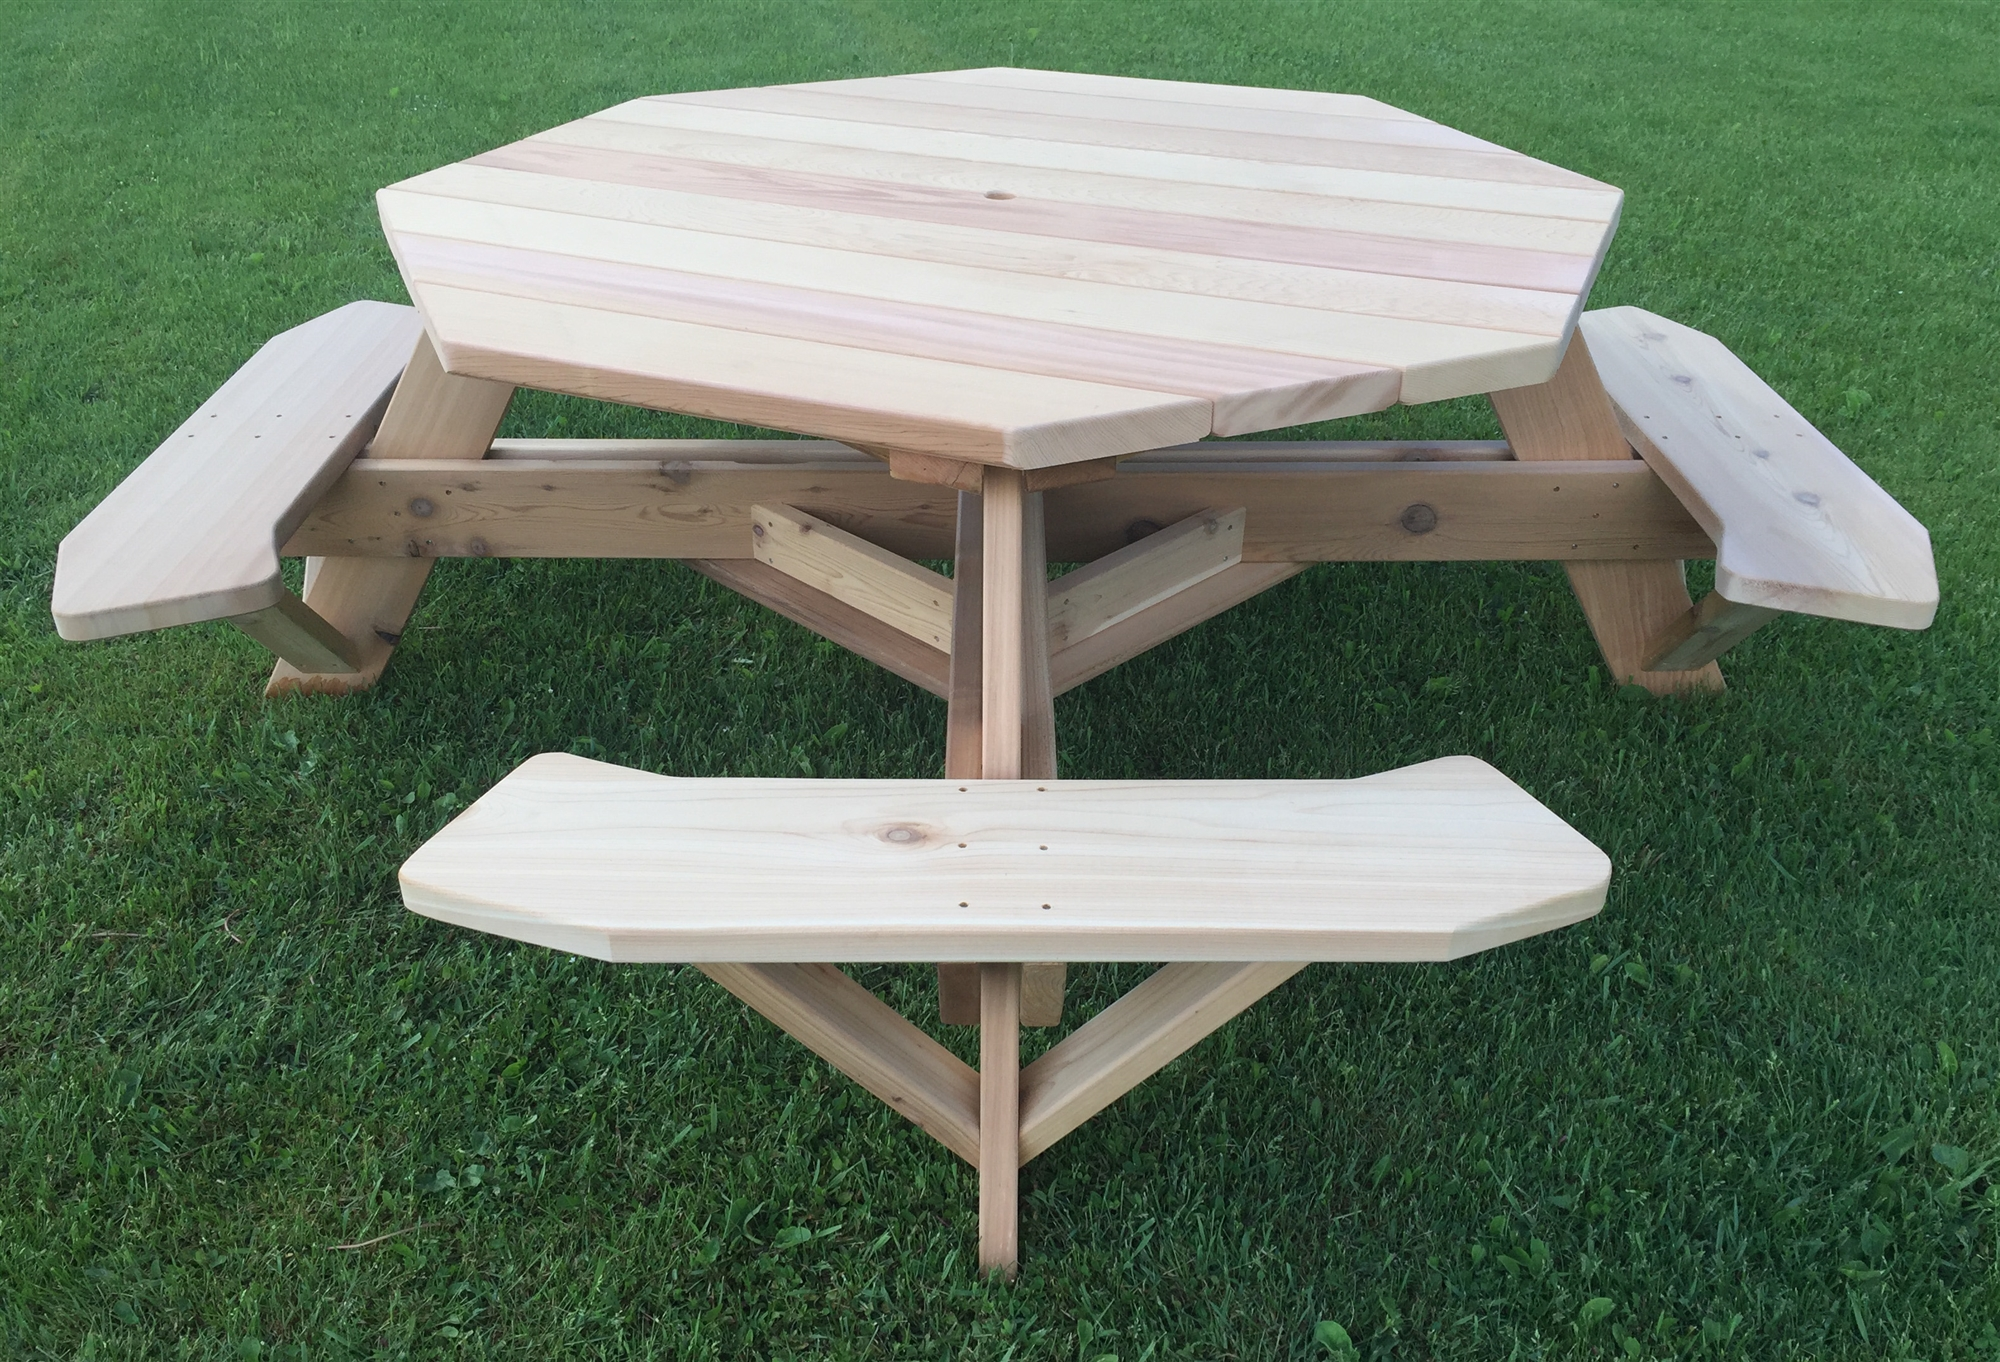 Woodshed Dallas Hexagon Picnic Tables For Sale Yard